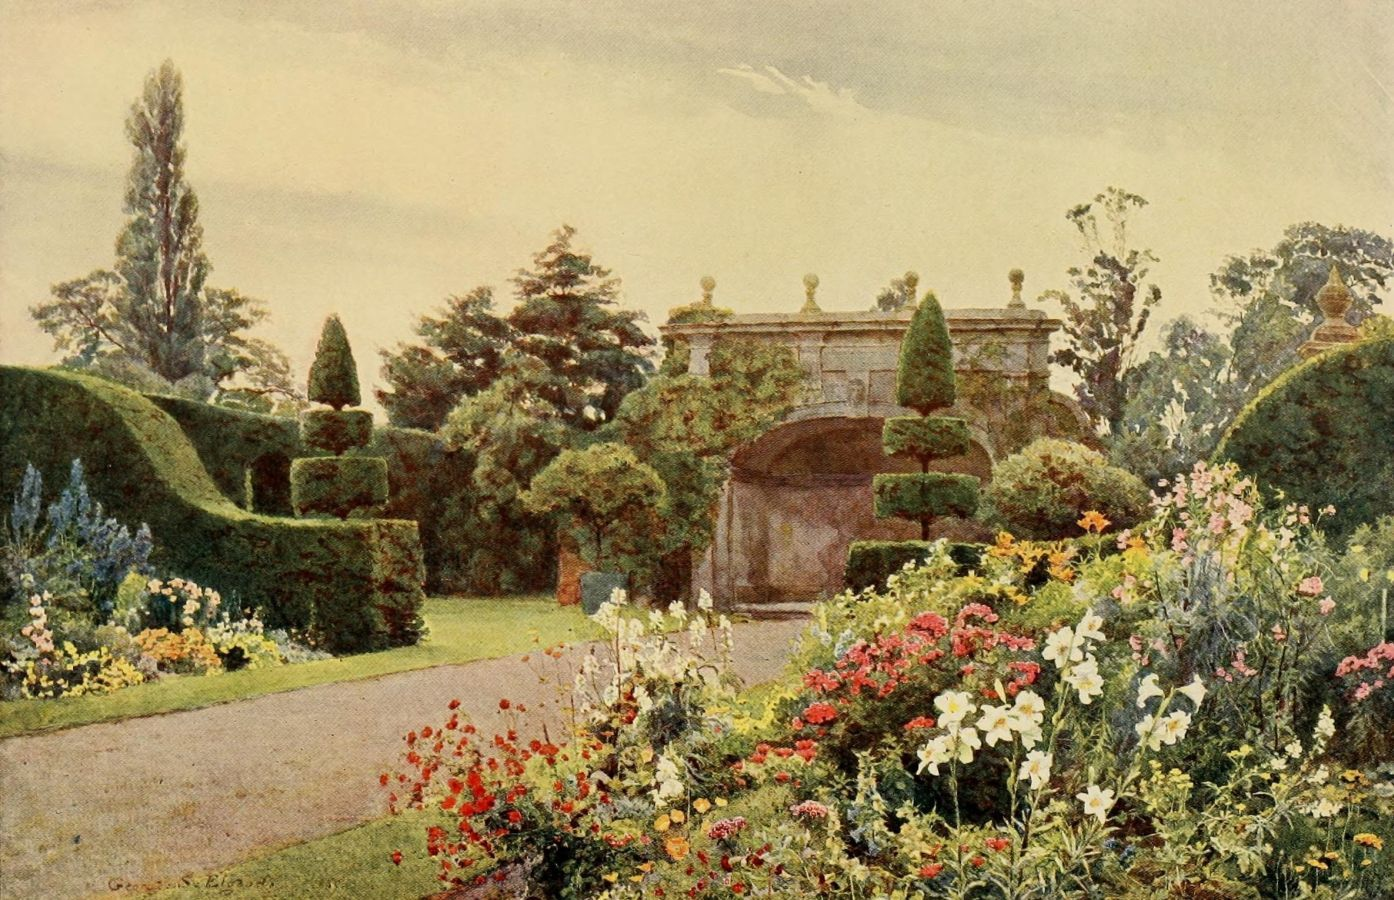 Elgood, George S. (1851-1943) - Some English Gardens 1904, Arley ...